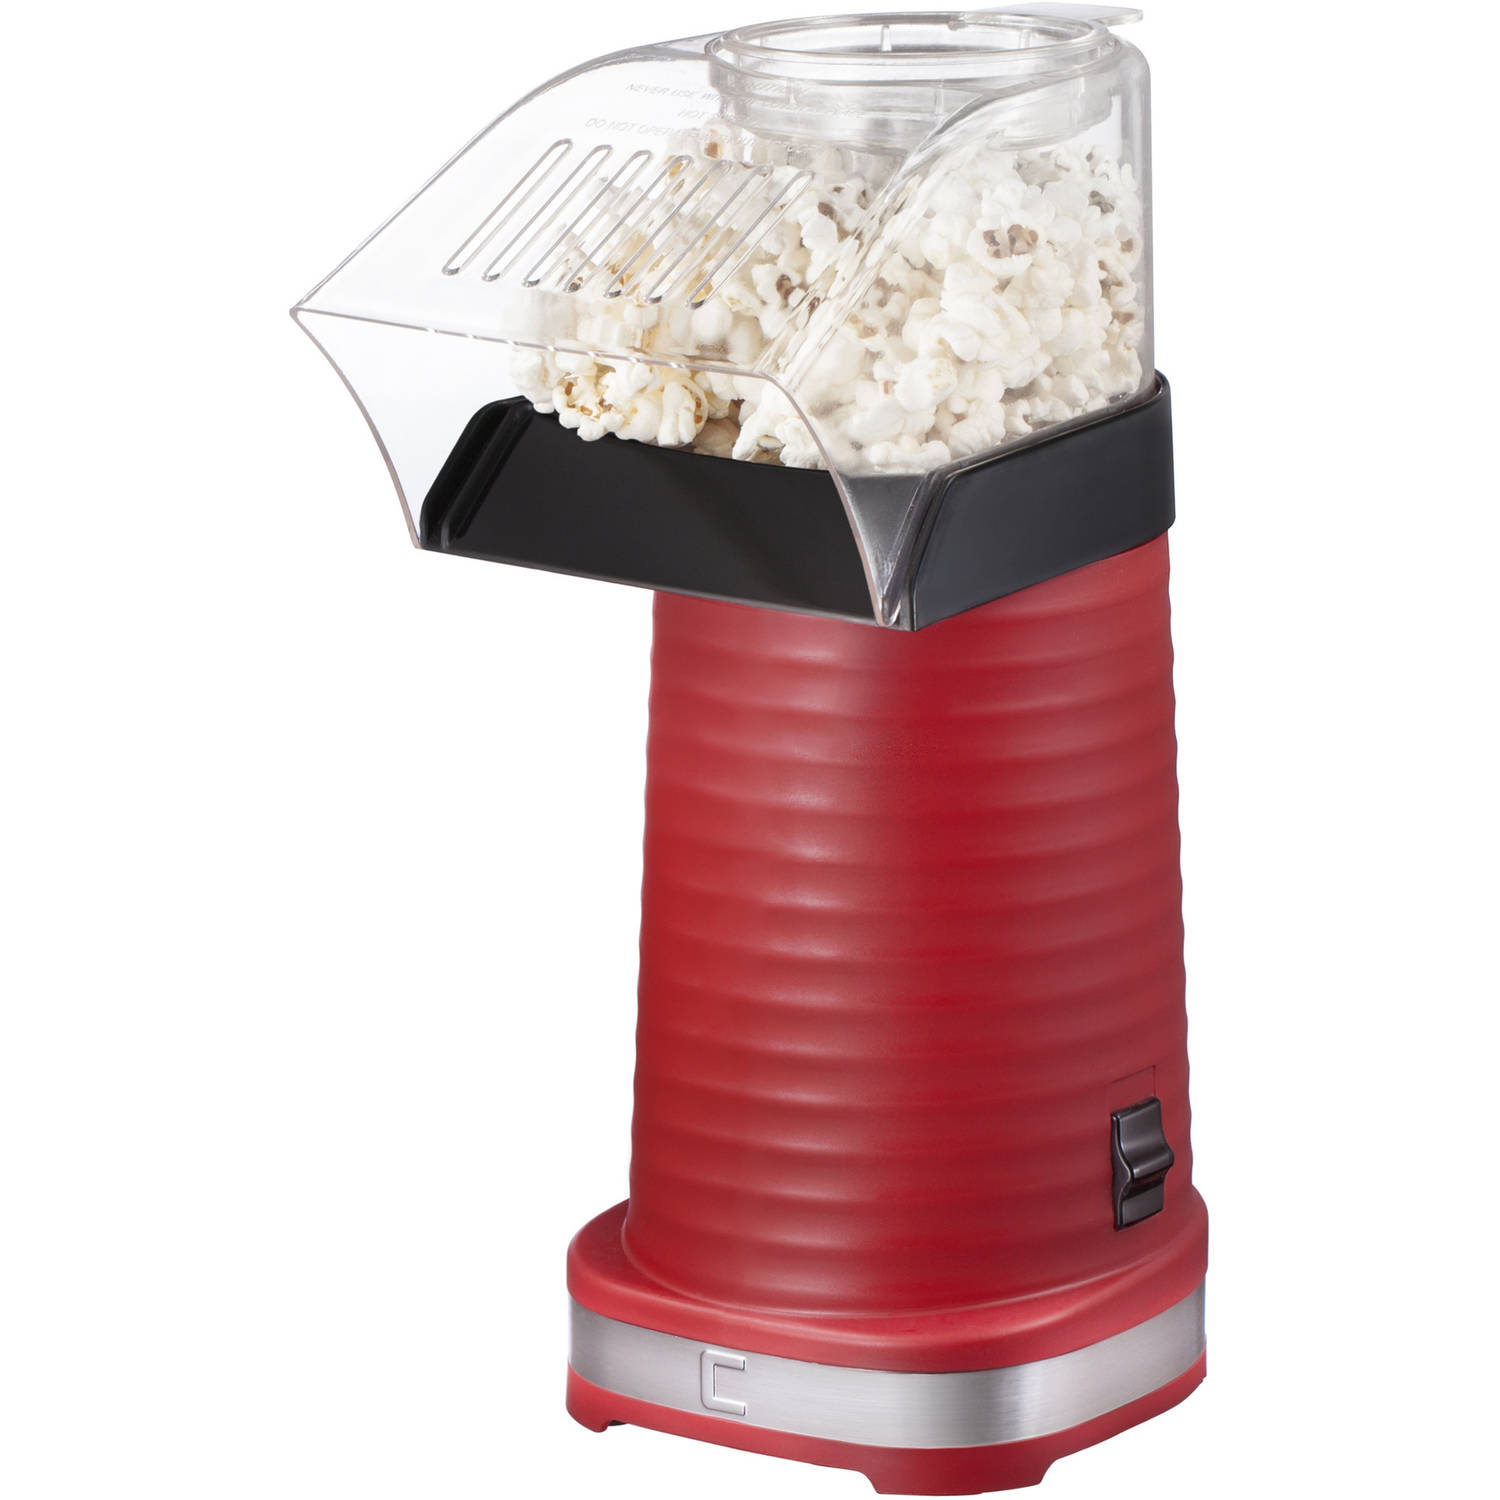 Chefman 12 Cup Air Pop Popcorn Maker, Dishwasher Safe & Measuring Cup Included, Red, RJ33-T